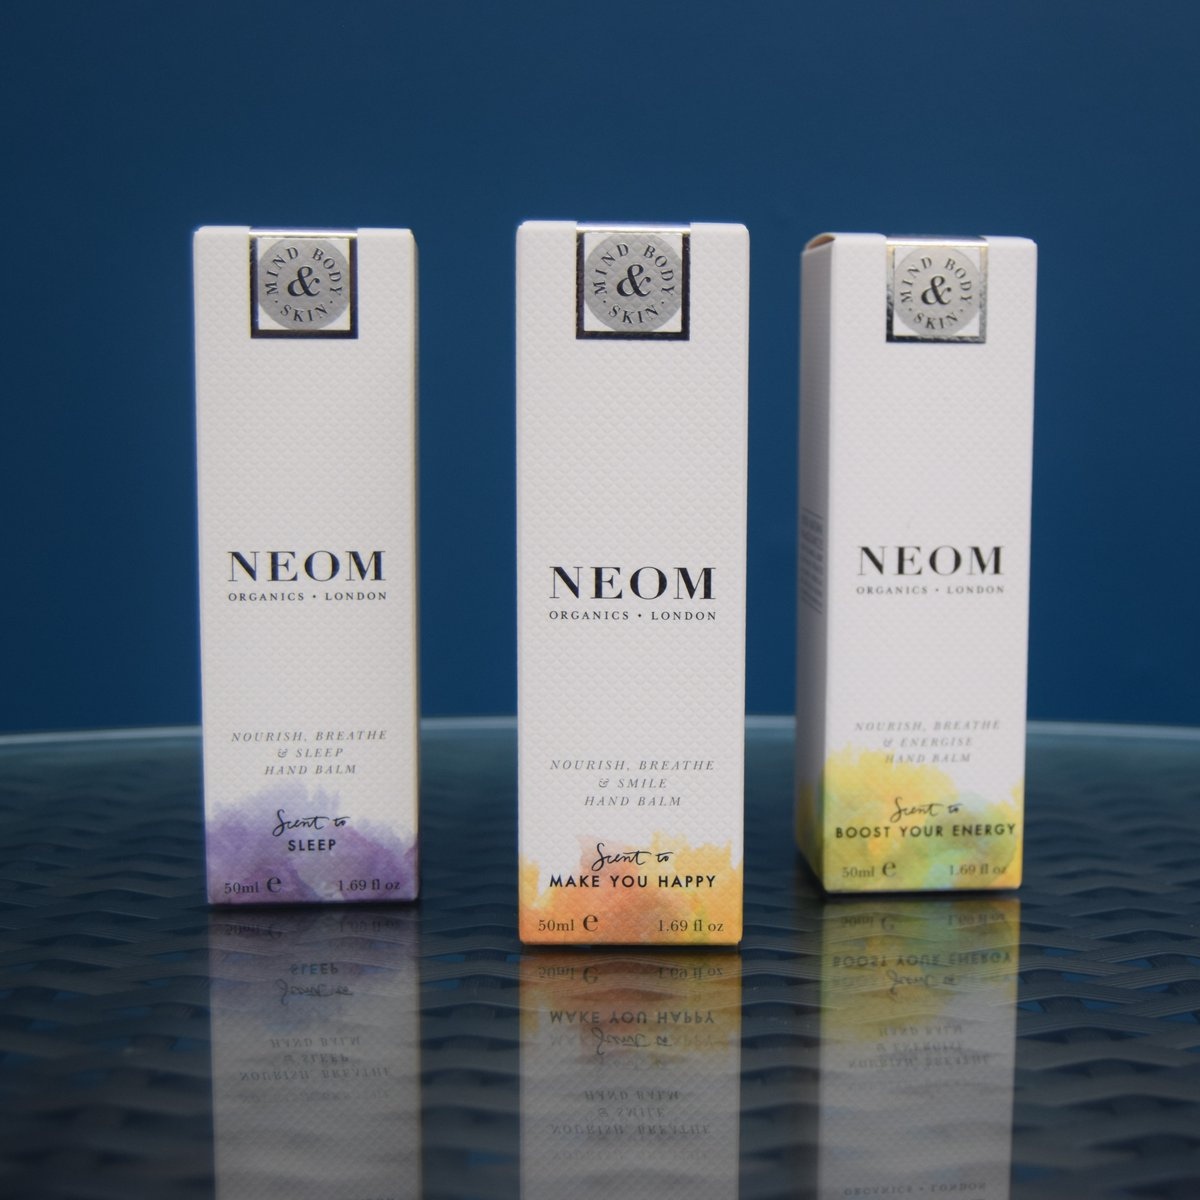 We currently have 25% off NEOM hand balm, body wash and body lotion at the Turkish Baths Harrogate 🥰  Shop our product range online:    Offer open for a limited time only!  #BlackFriday2020 #Harrogate